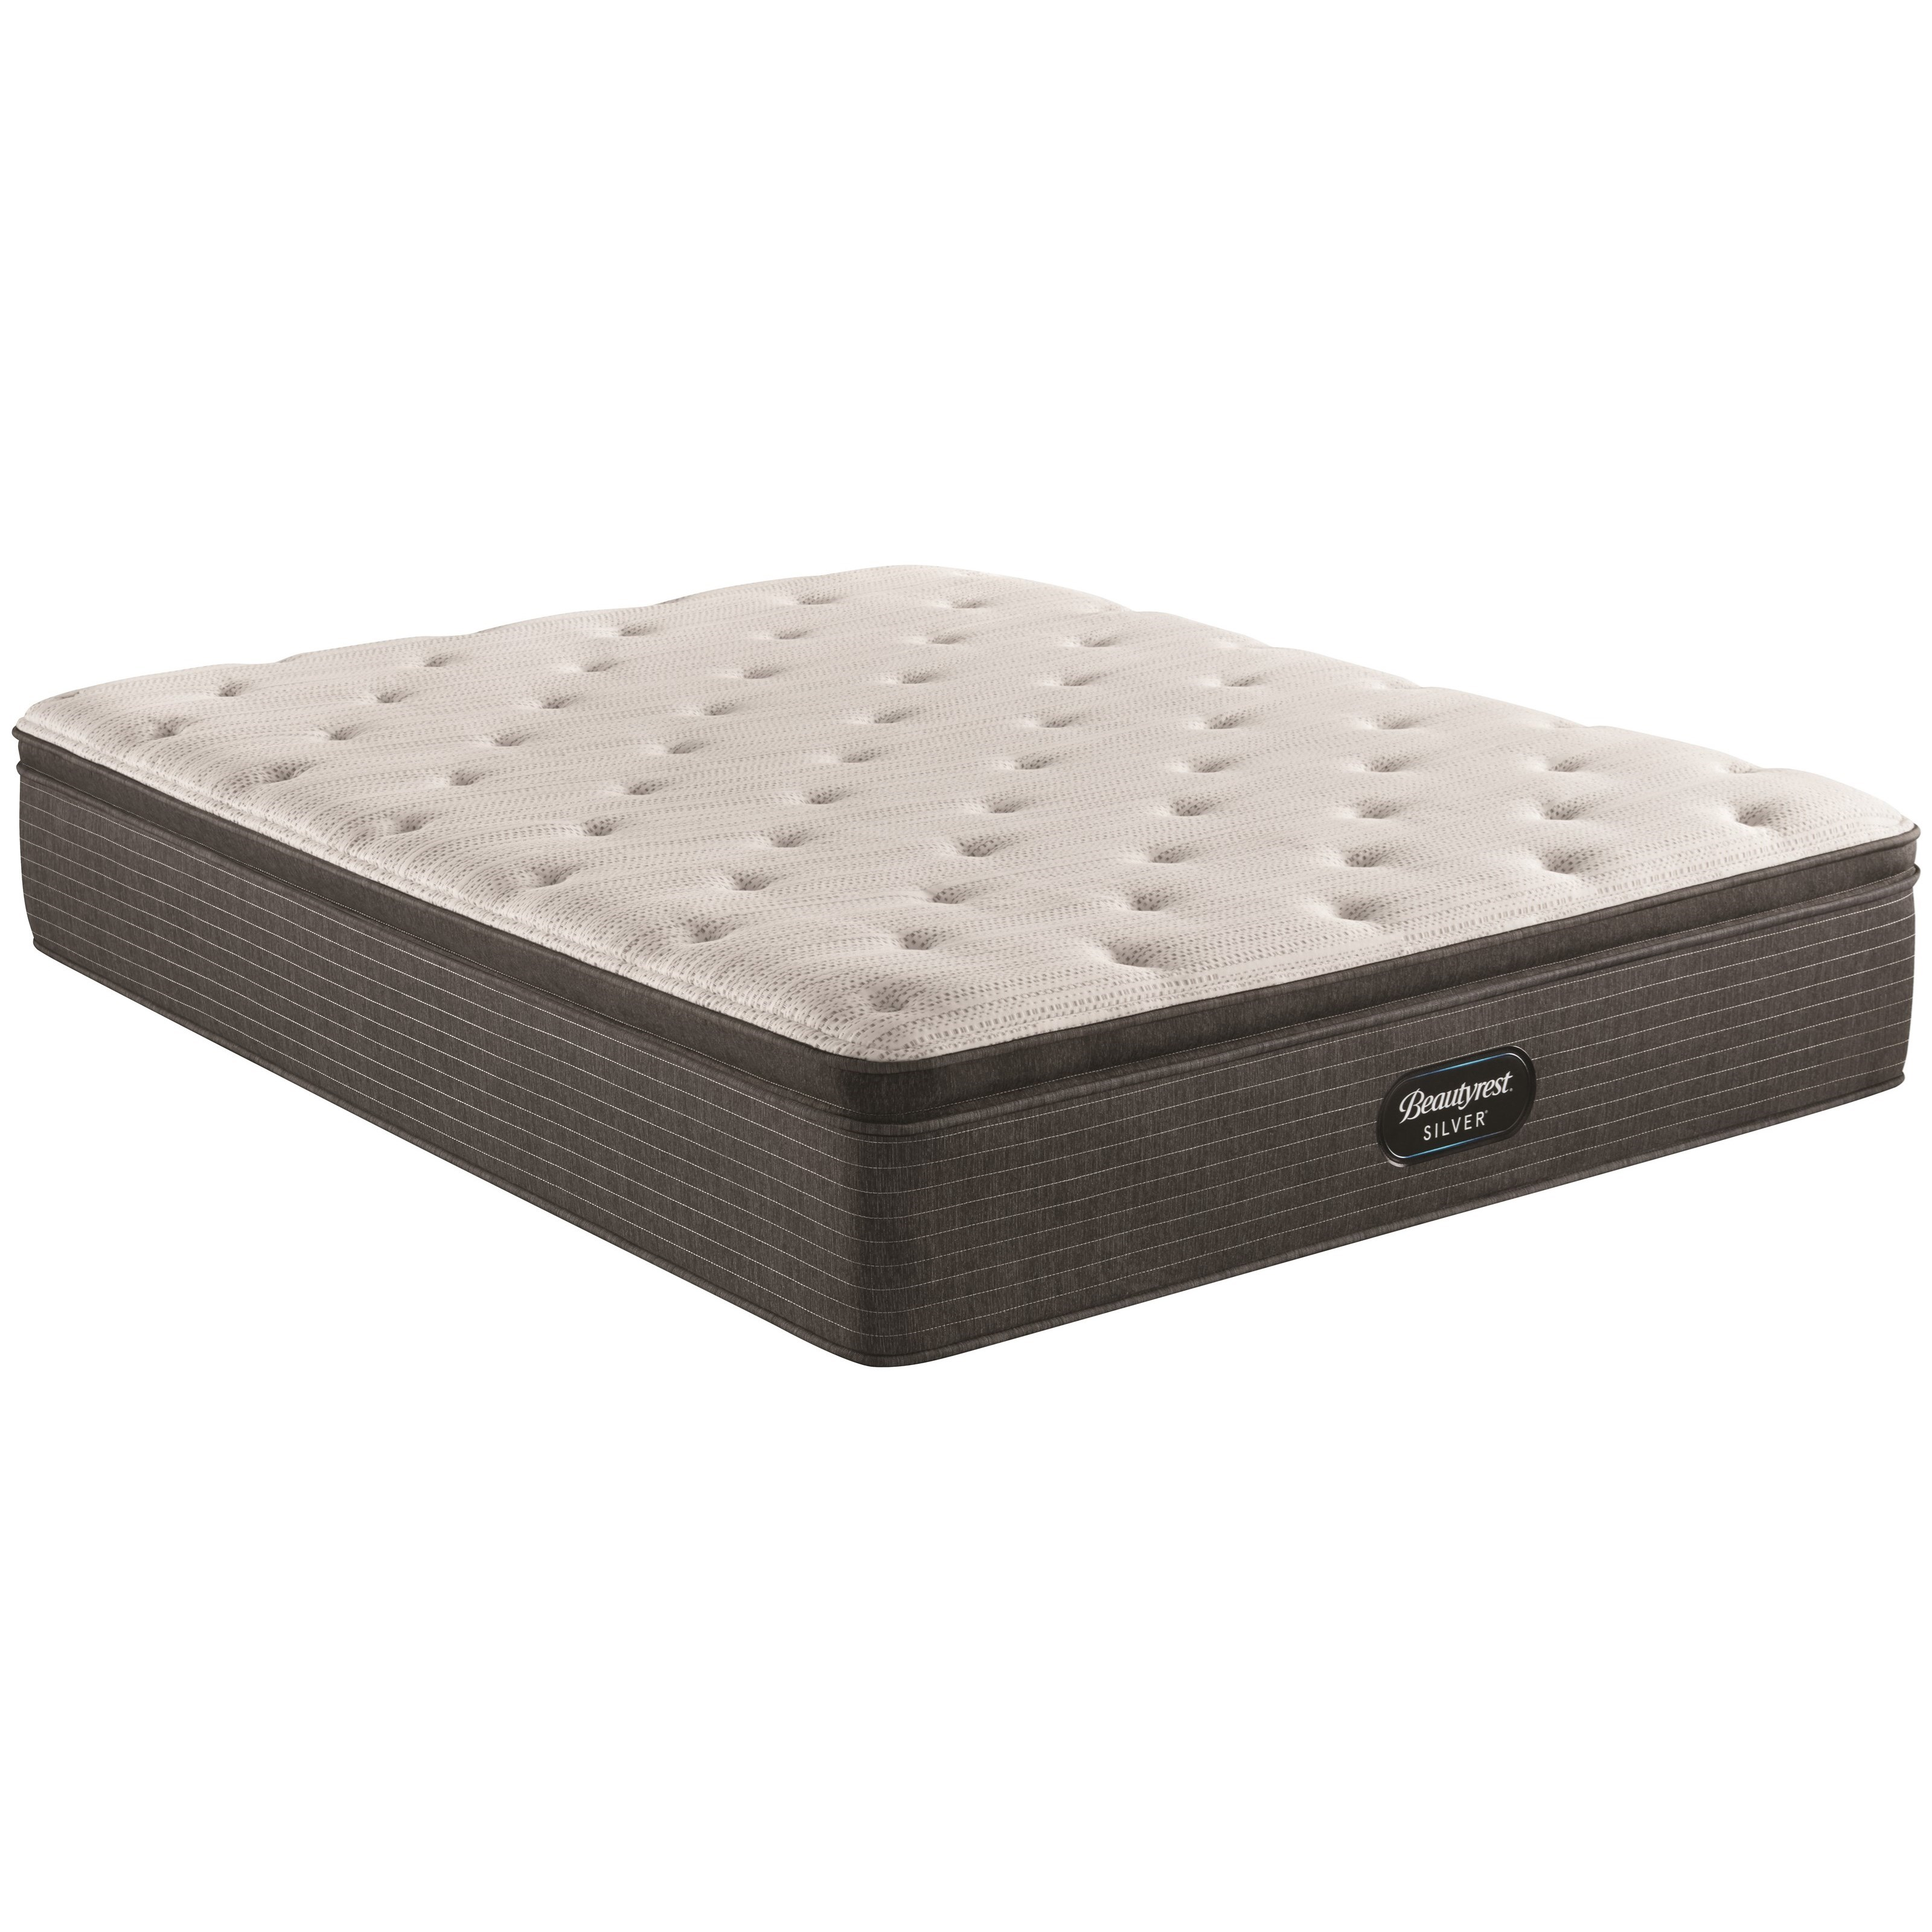 BRS900 Medium Pillow Top Beautyrest Twin Medium Pillow Top Mattress by Beautyrest at SlumberWorld